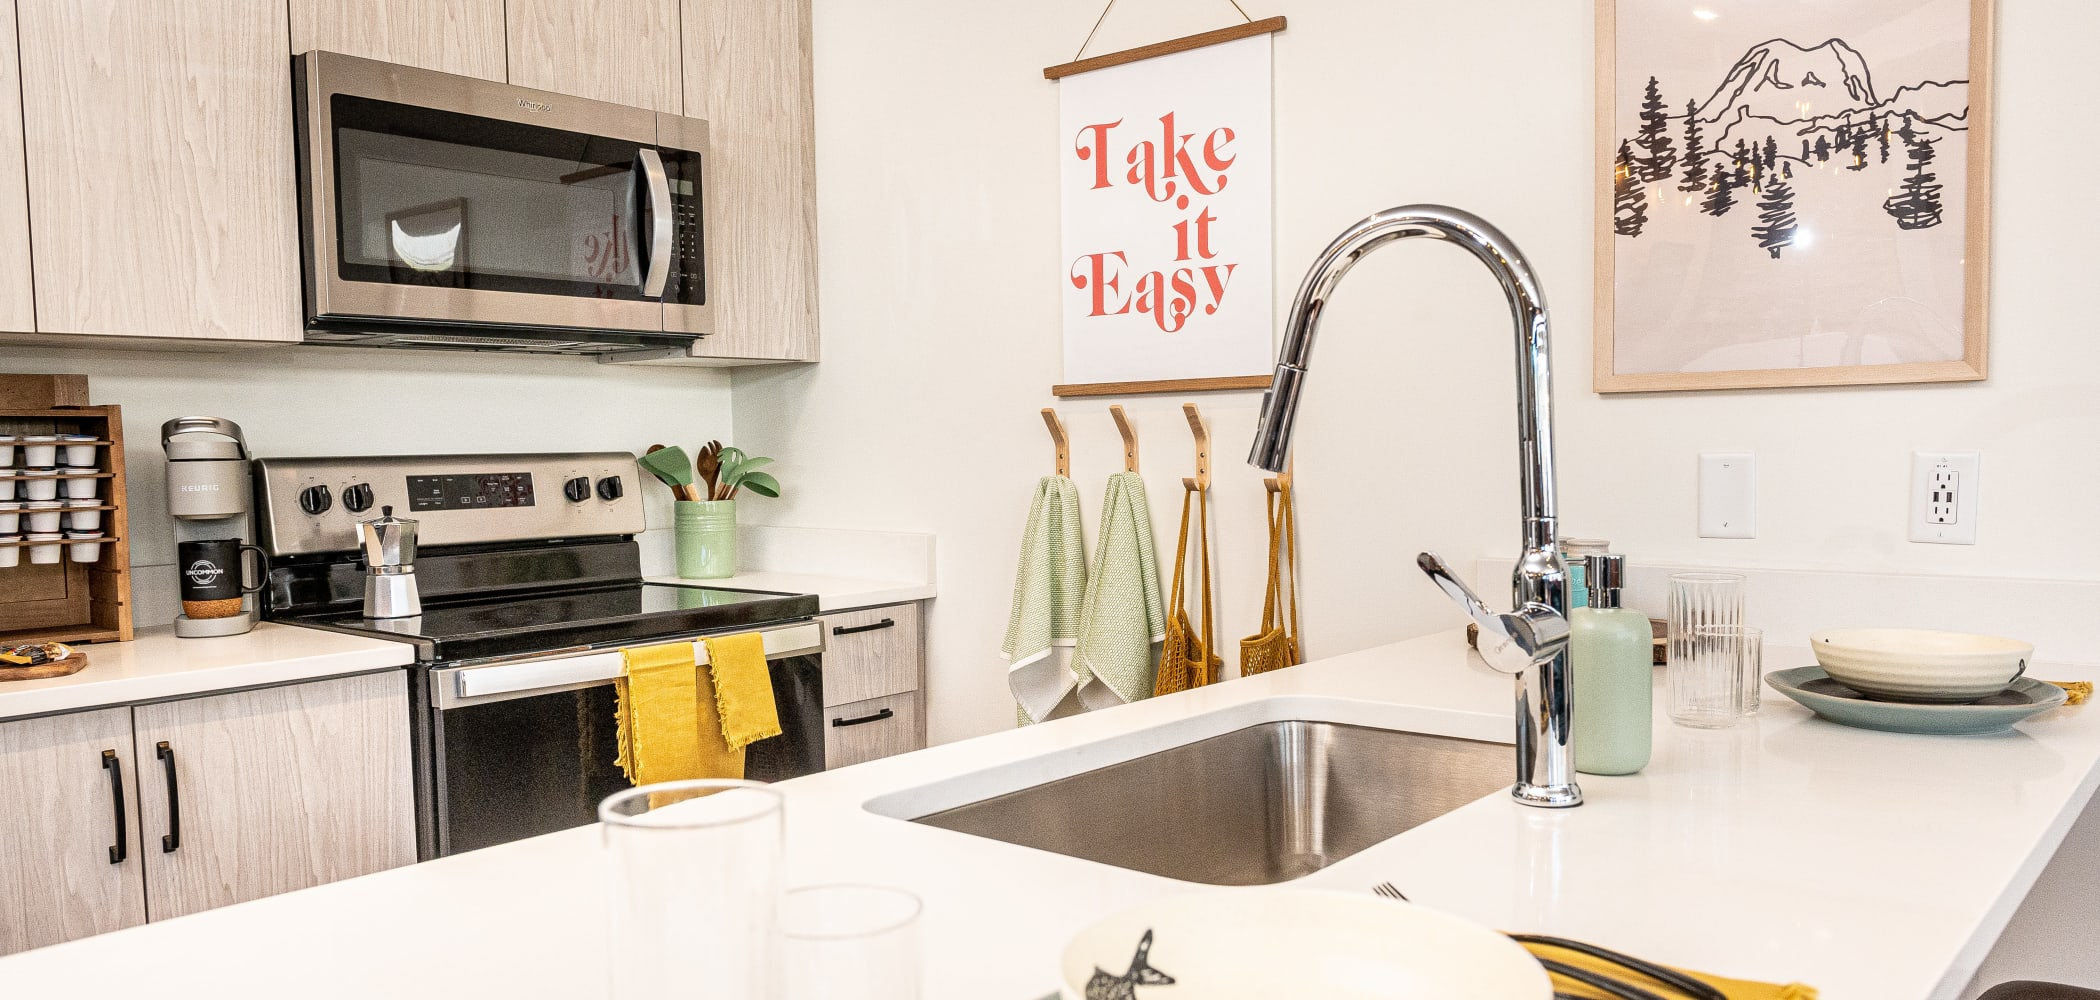 Enjoy Apartments with a Modern Kitchen at UNCOMMON Flagstaff